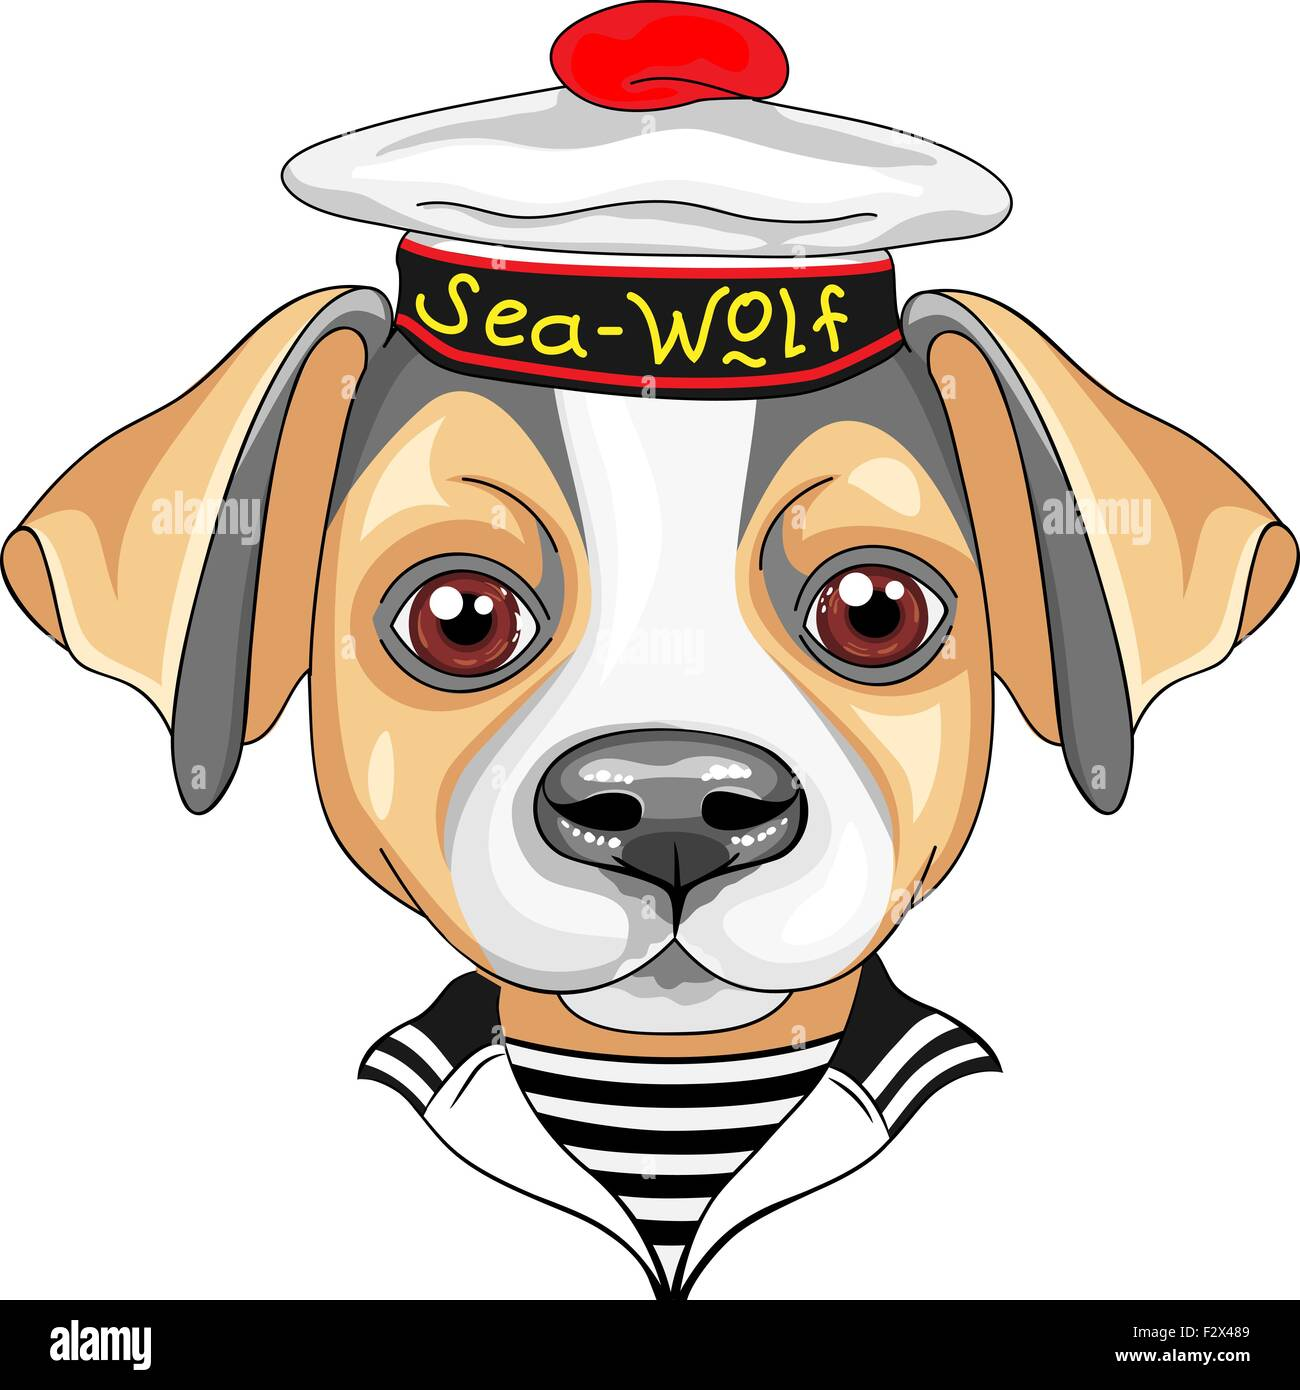 Sailor stock photos illustrations and vector art - Stock Vector Vector Cartoon Dog Jack Russell Terrier Sailor